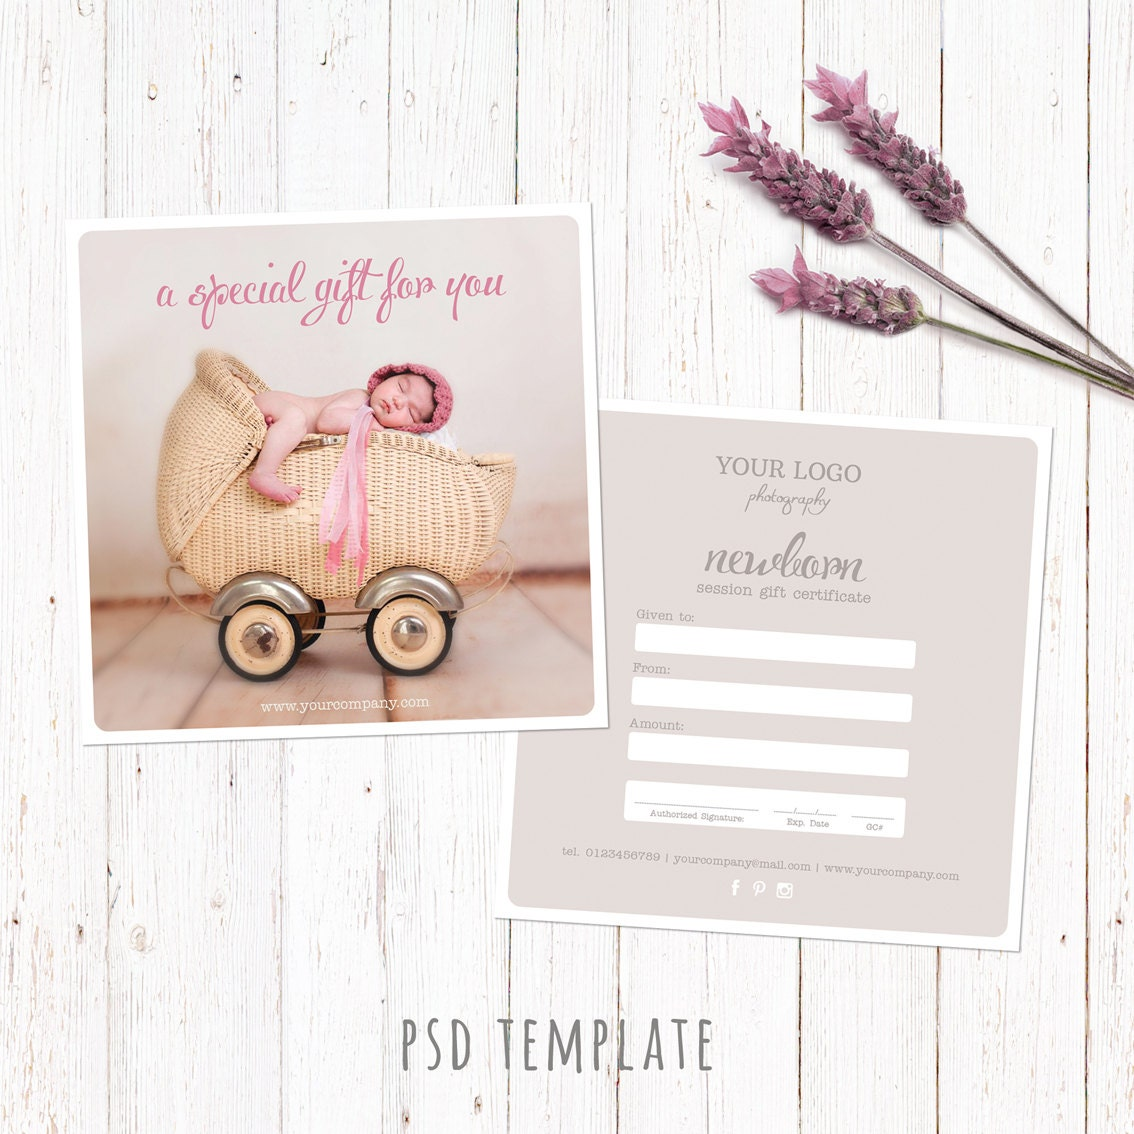 Gift certificate template newborn session photography gift zoom 1betcityfo Choice Image